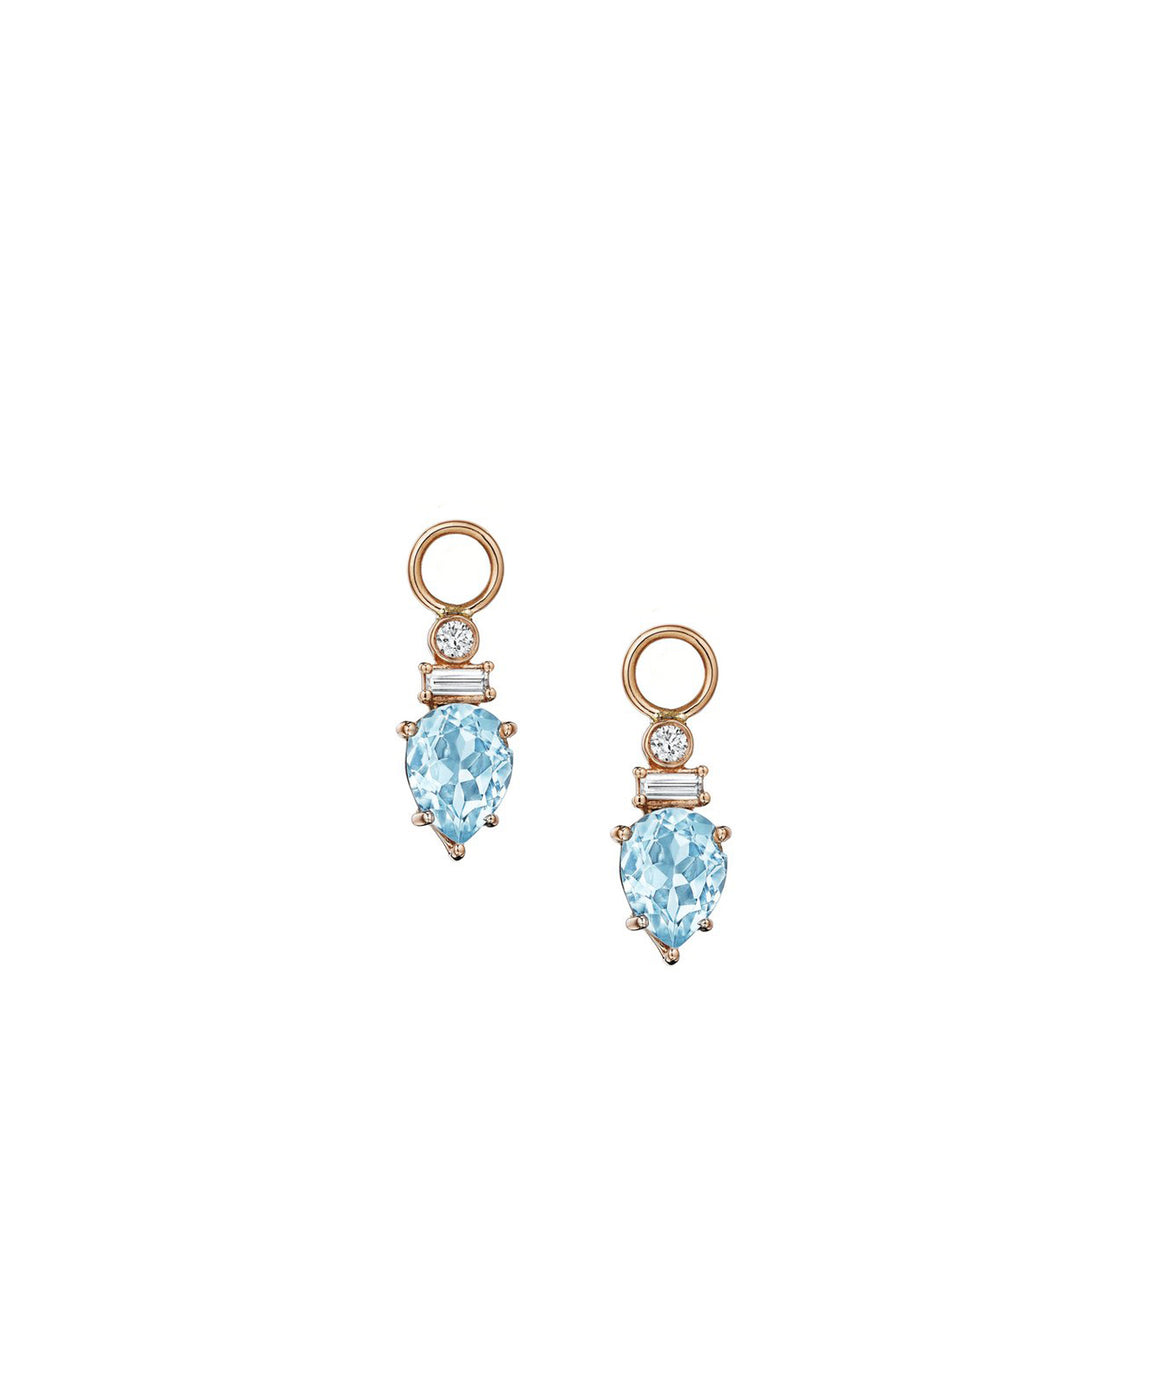 Aquamarine earring charms - Lesley Ann Jewels